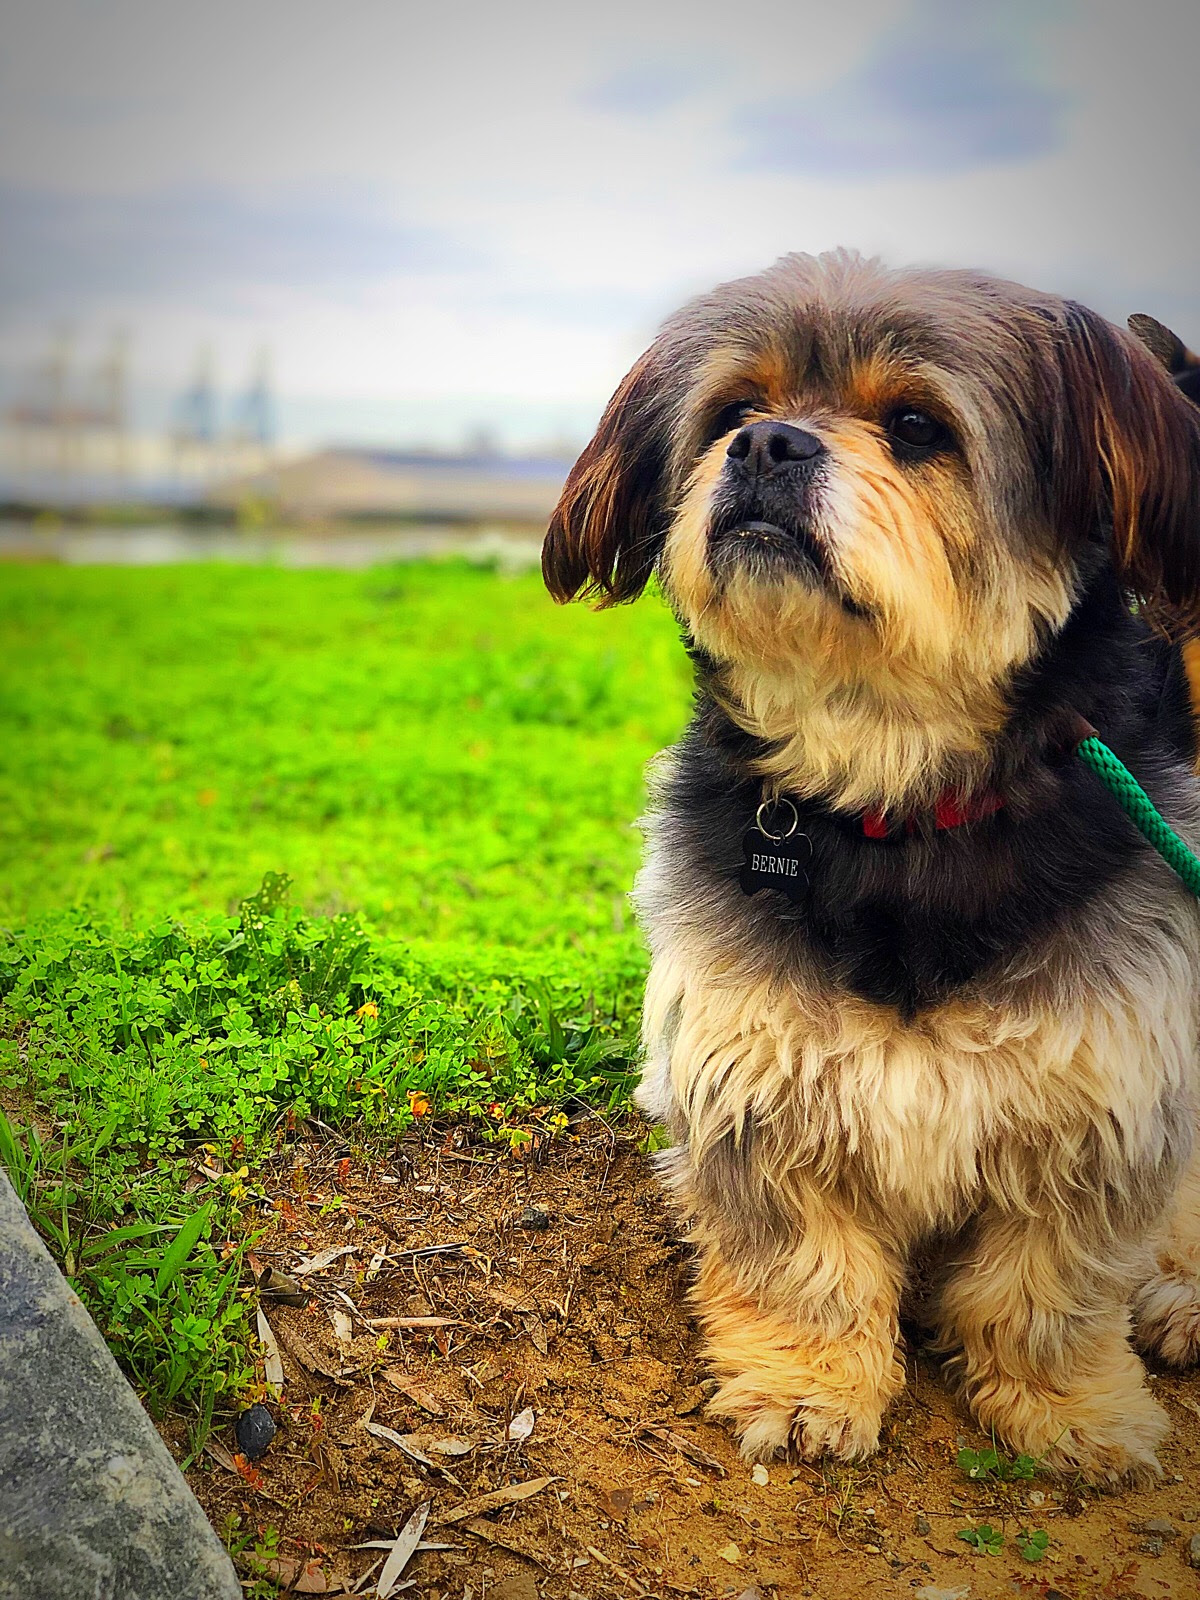 "BERNIE - BREED: Shih Tzu / Pekingese / etc. | RESCUEDIG: @bernie_bear_pupLOVES: sleeping, sniffing, lallygaggingHATES: skateboardsTESTIMONIAL: ""Danielle's Mission District structured pack walks are way more than a potty break or play time; I like to think of it as sending my dog Bernie to school three times a week! Danielle teaches the dogs to coexist with other dogs and be comfortable walking the streets of SF where we all know there are many scary distractions. Bernie HATES skateboards and Danielle makes it a point to take trips to the skate park so he can work on being calm around skateboards. When it comes to communication, Danielle gives you a peek into where the pack went and what they worked on via short handwritten notes and super cute instagram stories. I feel good knowing every M/W/F my dog gets to spend 90+ minutes out with his pack getting some exercise and learning to navigate the world. And, he is slowly becoming more calm when we hear the dreaded skateboards. Bernie and I are so lucky to have Danielle and The Dandy Dogwalker in our lives!"""